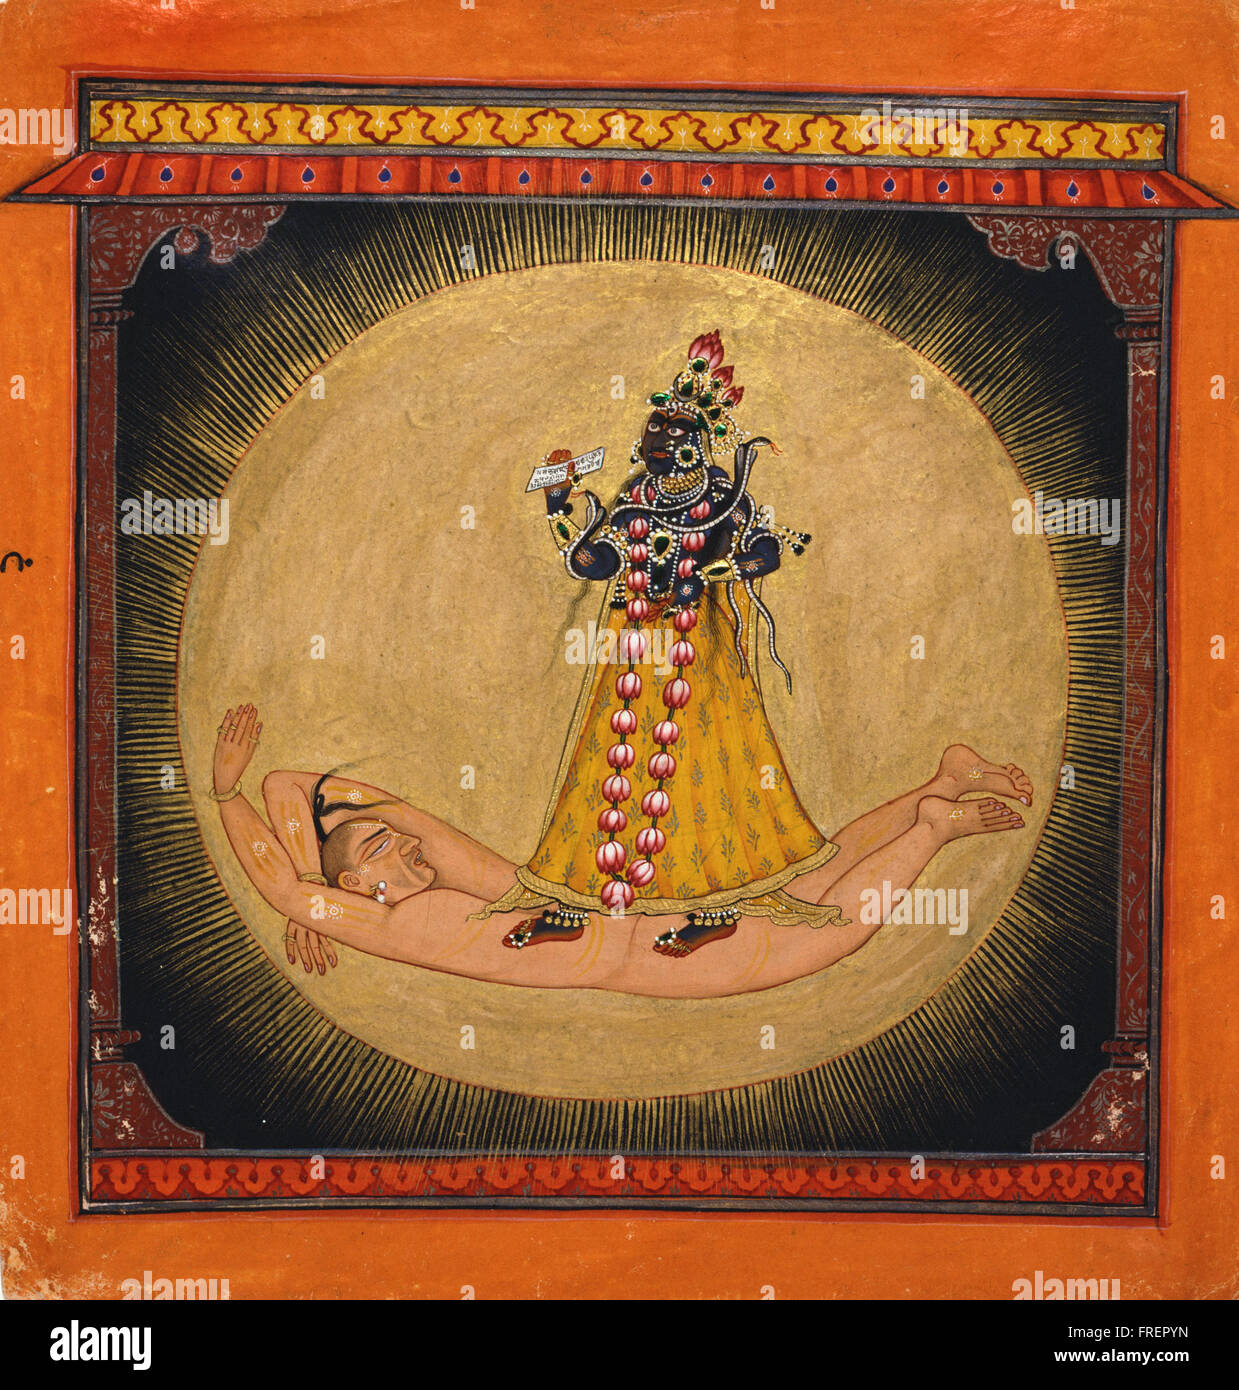 Maker unknown, India Bhadrakali within the Rising Sun - Stock Image